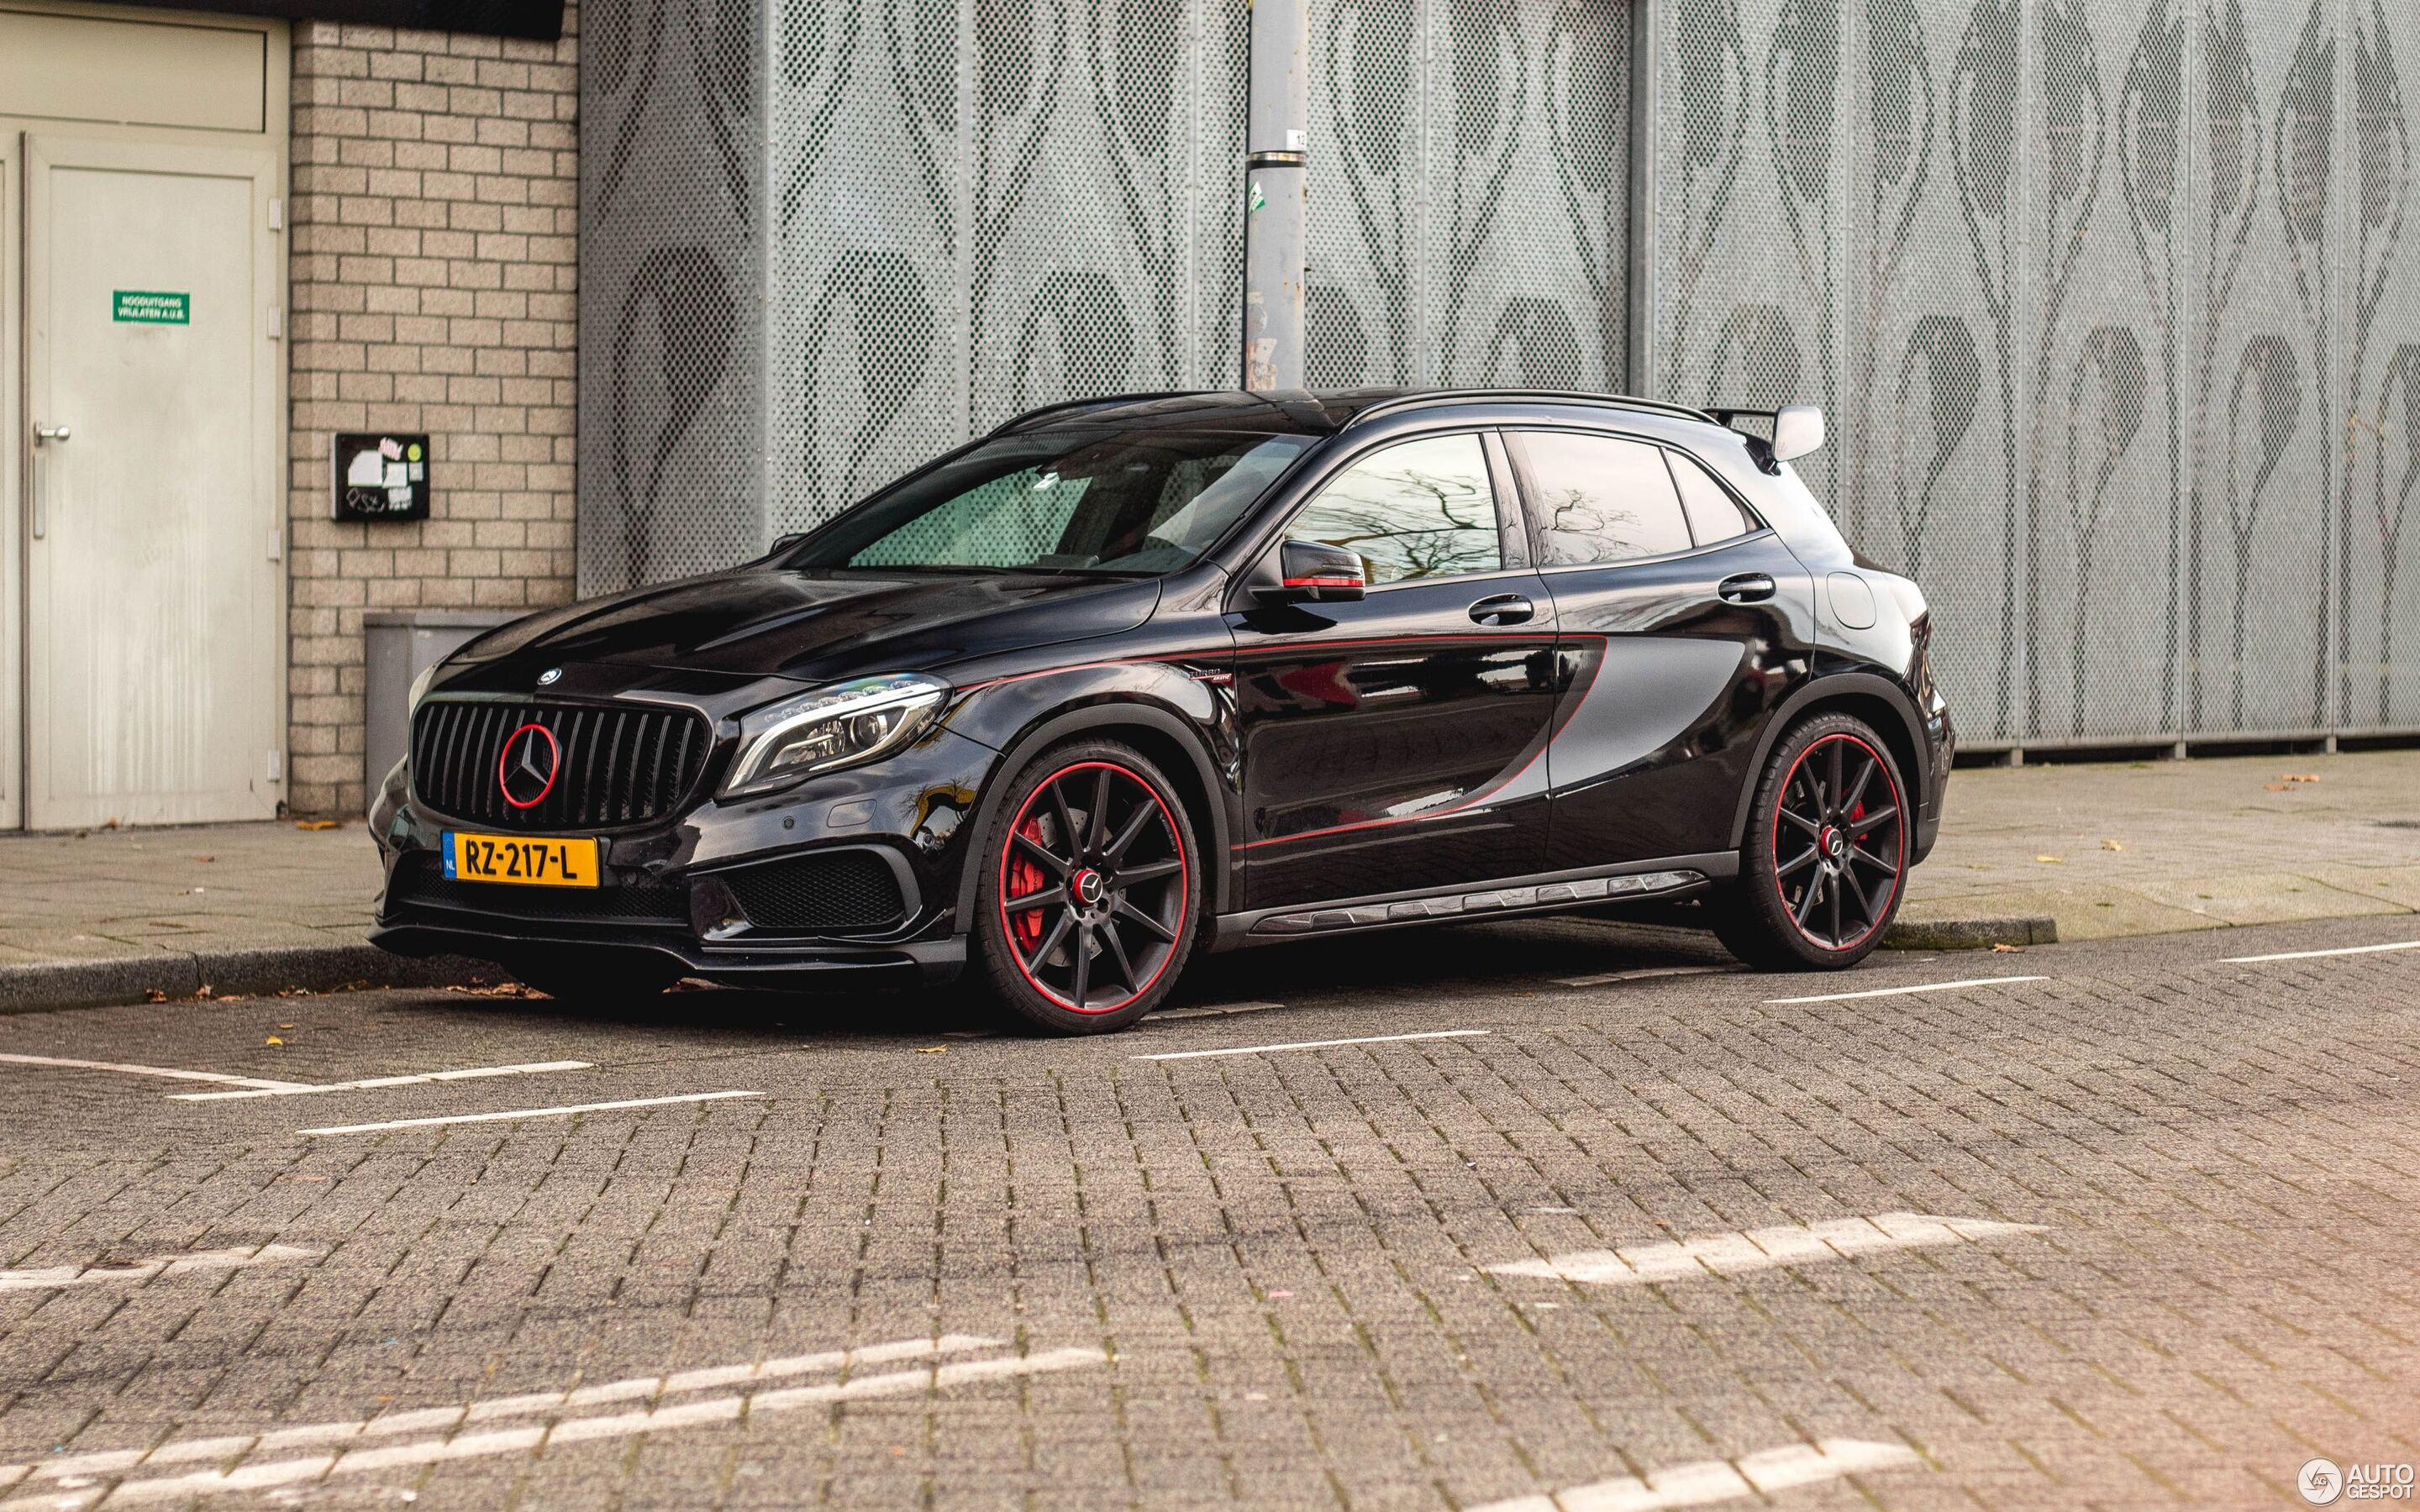 Mercedes-Benz GLA 45 AMG Edition 1 - 2 december 2019 - Autogespot